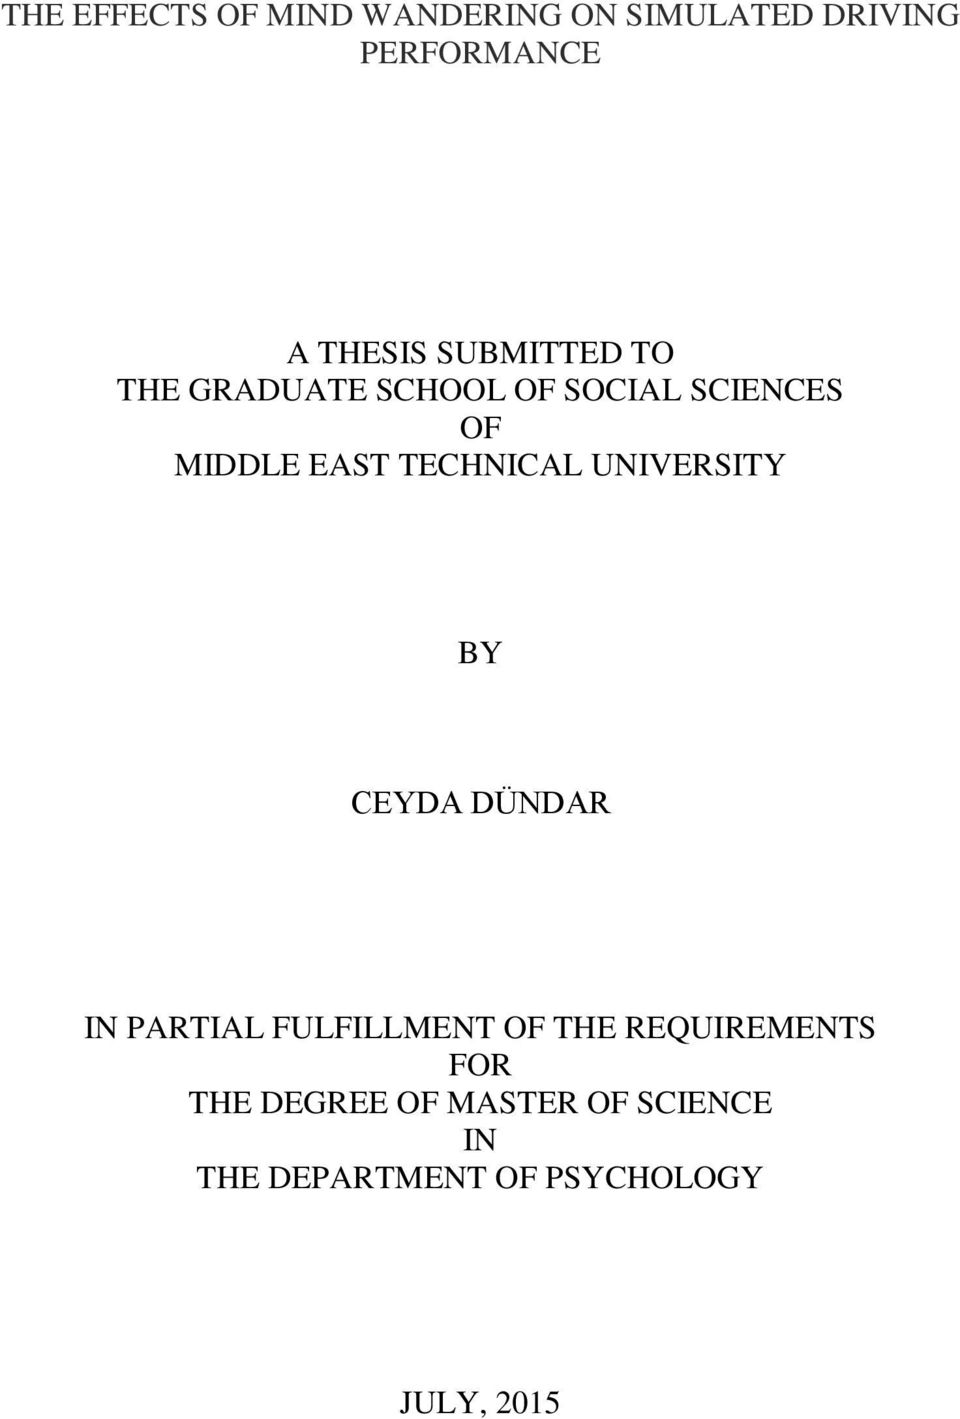 TECHNICAL UNIVERSITY BY CEYDA DÜNDAR IN PARTIAL FULFILLMENT OF THE